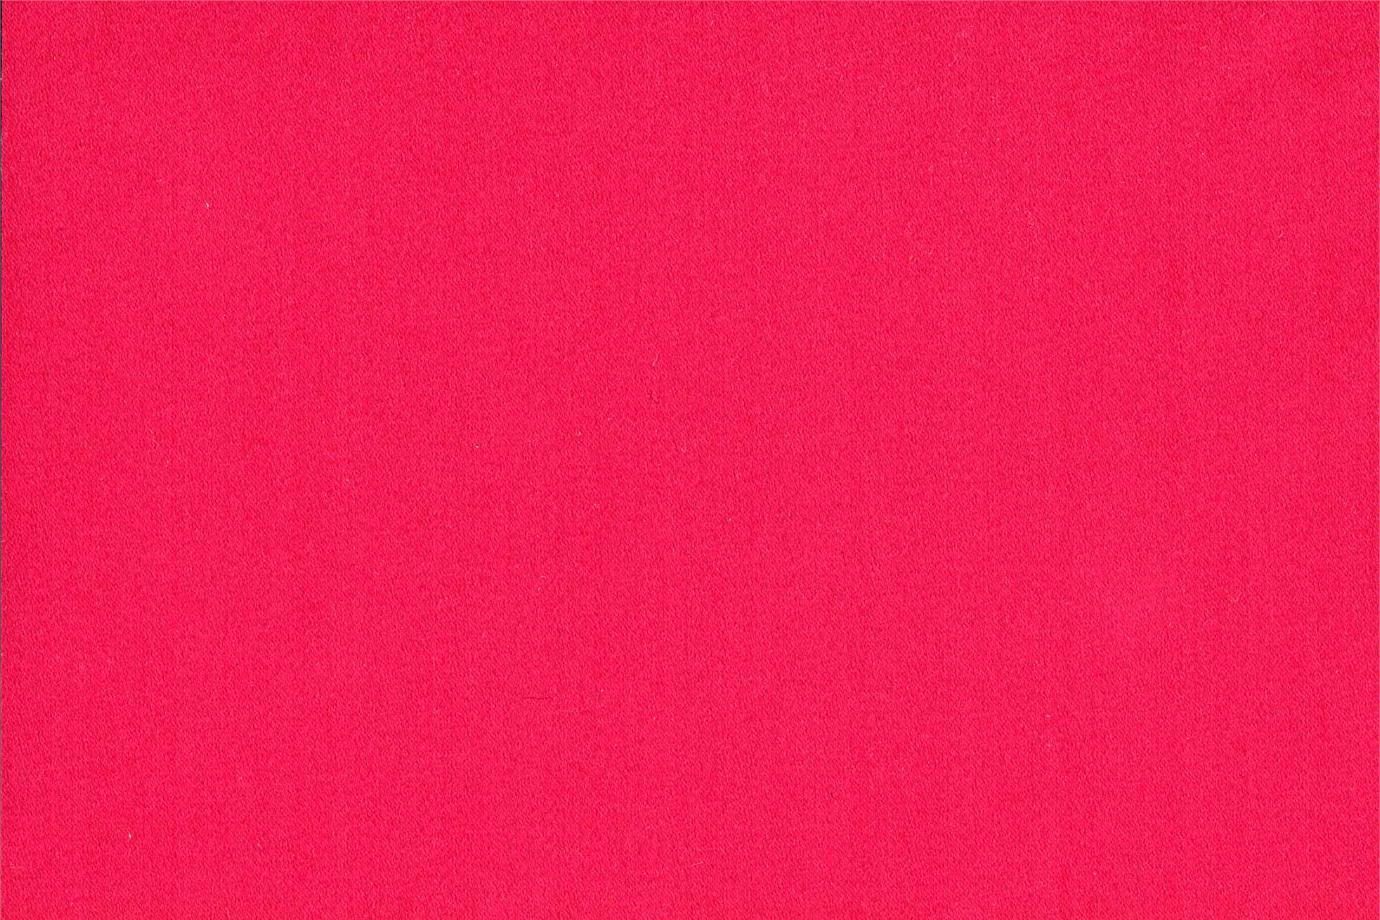 Home Window Decor J1594 Meo Patacca 016 Fuxia Brochier